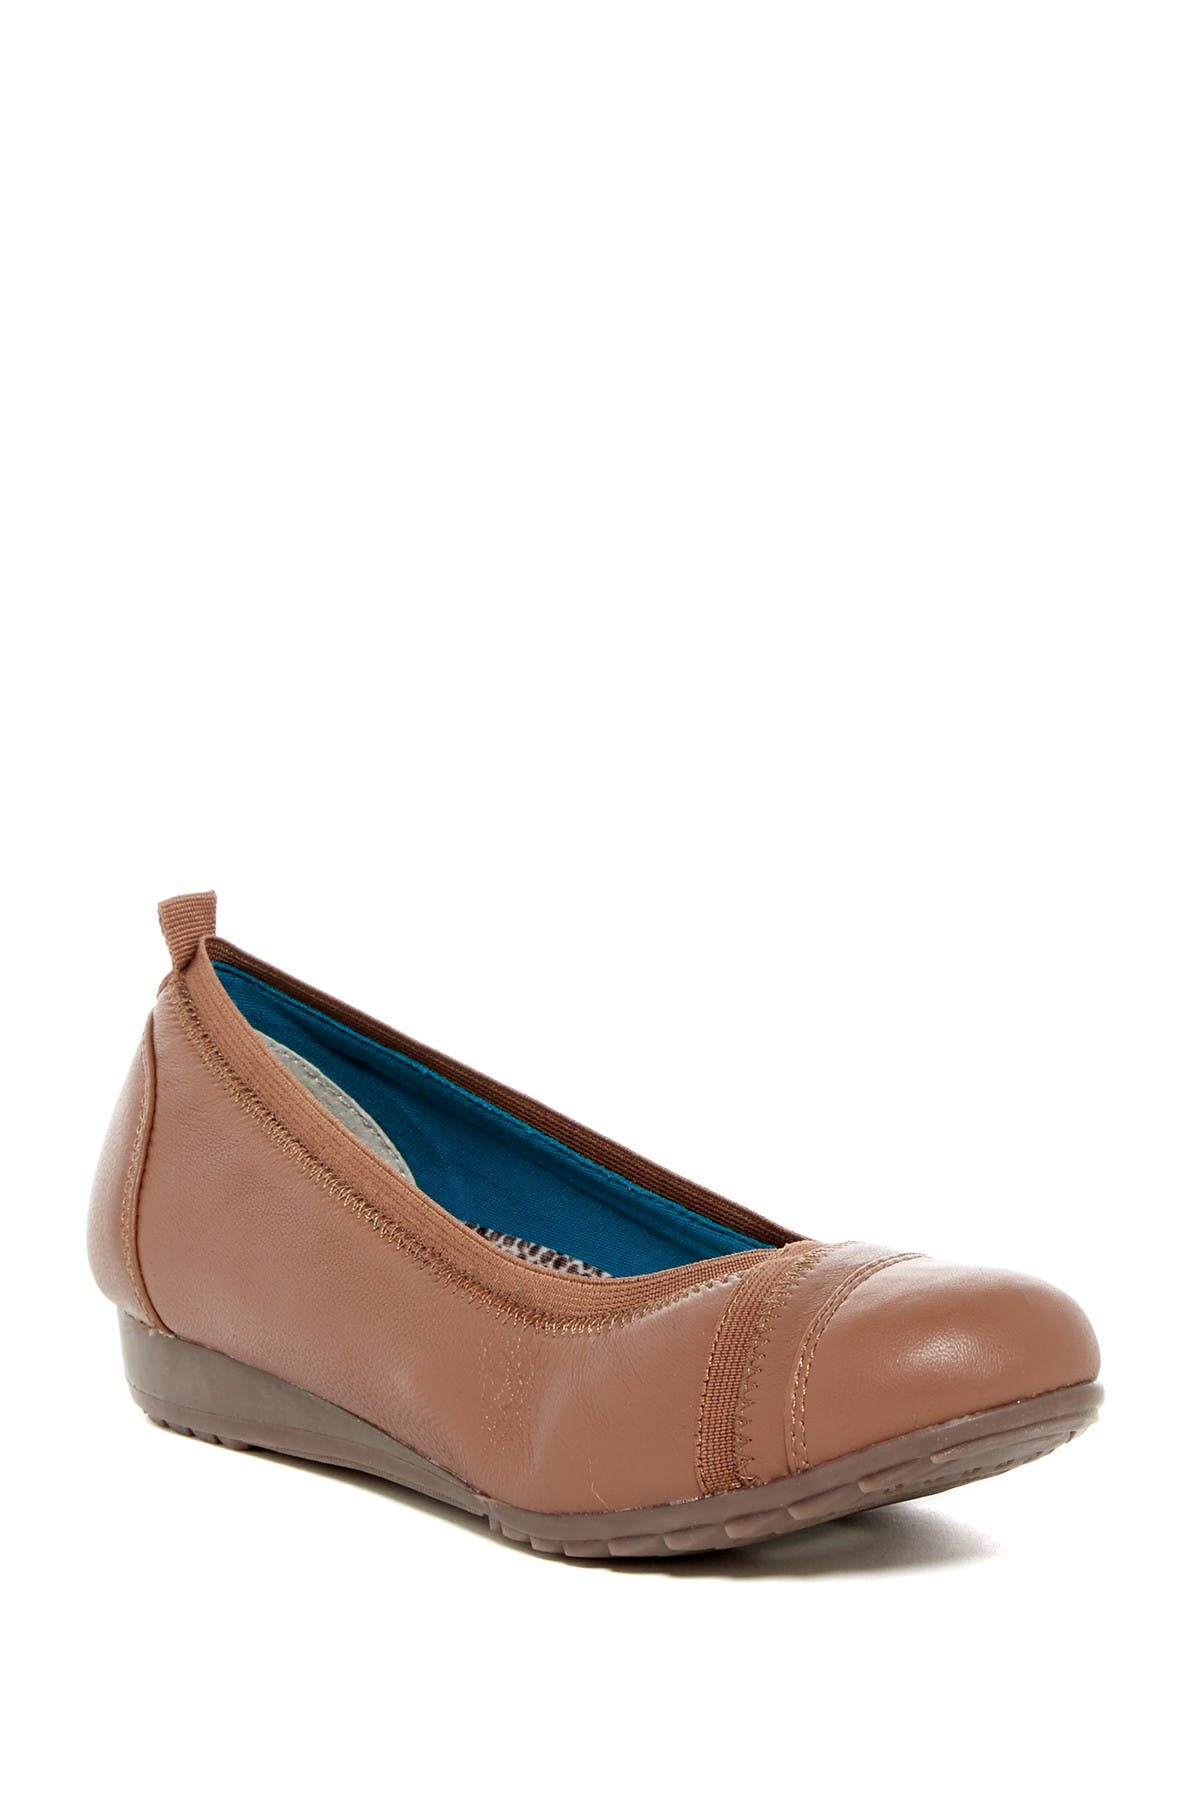 Image of Skechers Rome Moderno Wedge Flat